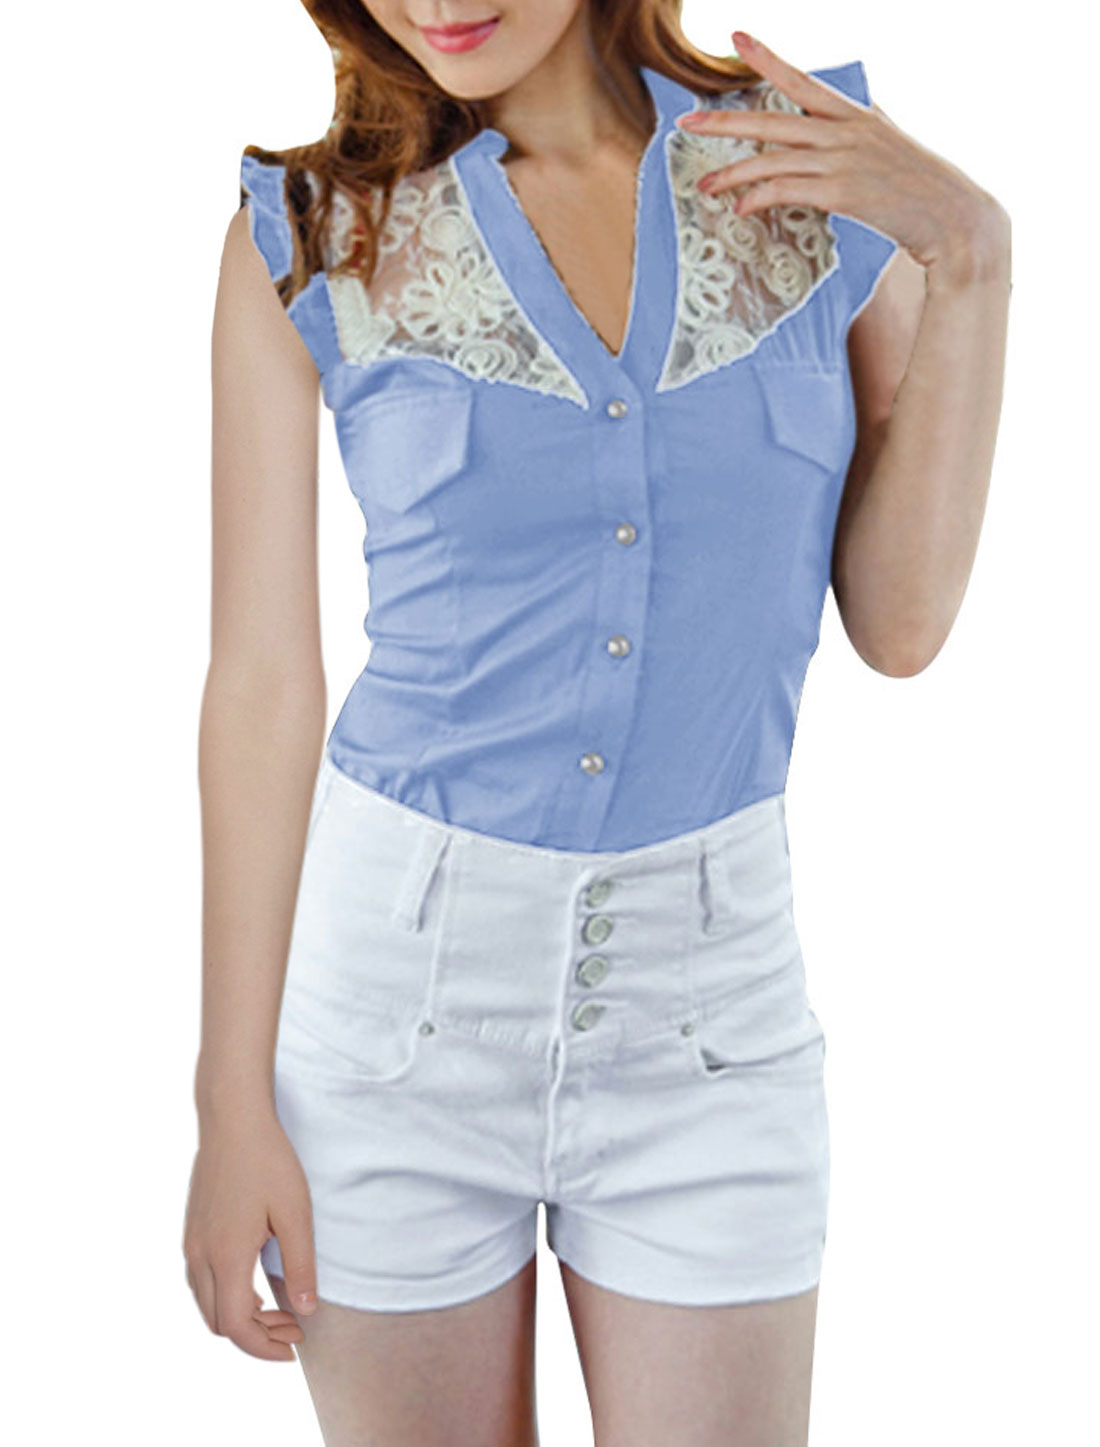 Women Stand Collar Sleeveless Lace Splice Top Shirt Light Blue XS